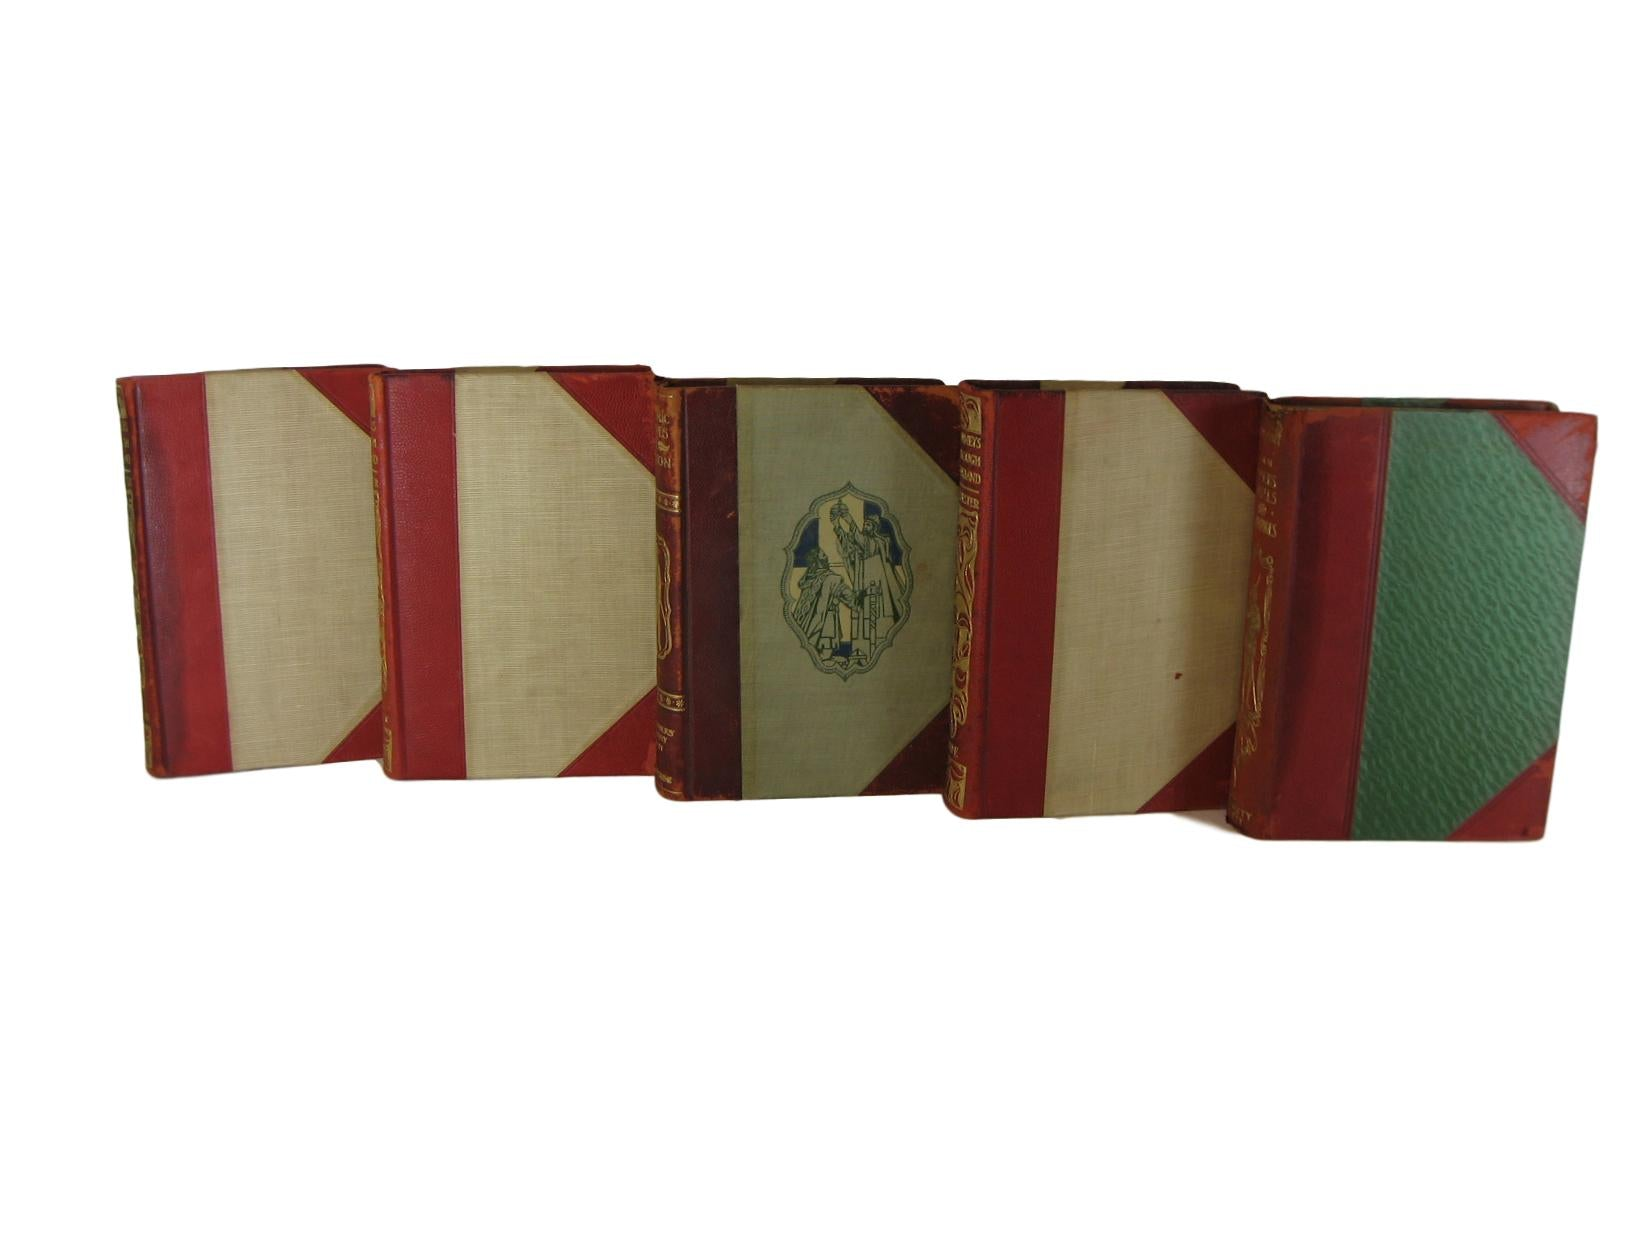 Leather Bound Antique Books, S/5 - Decades of Vintage